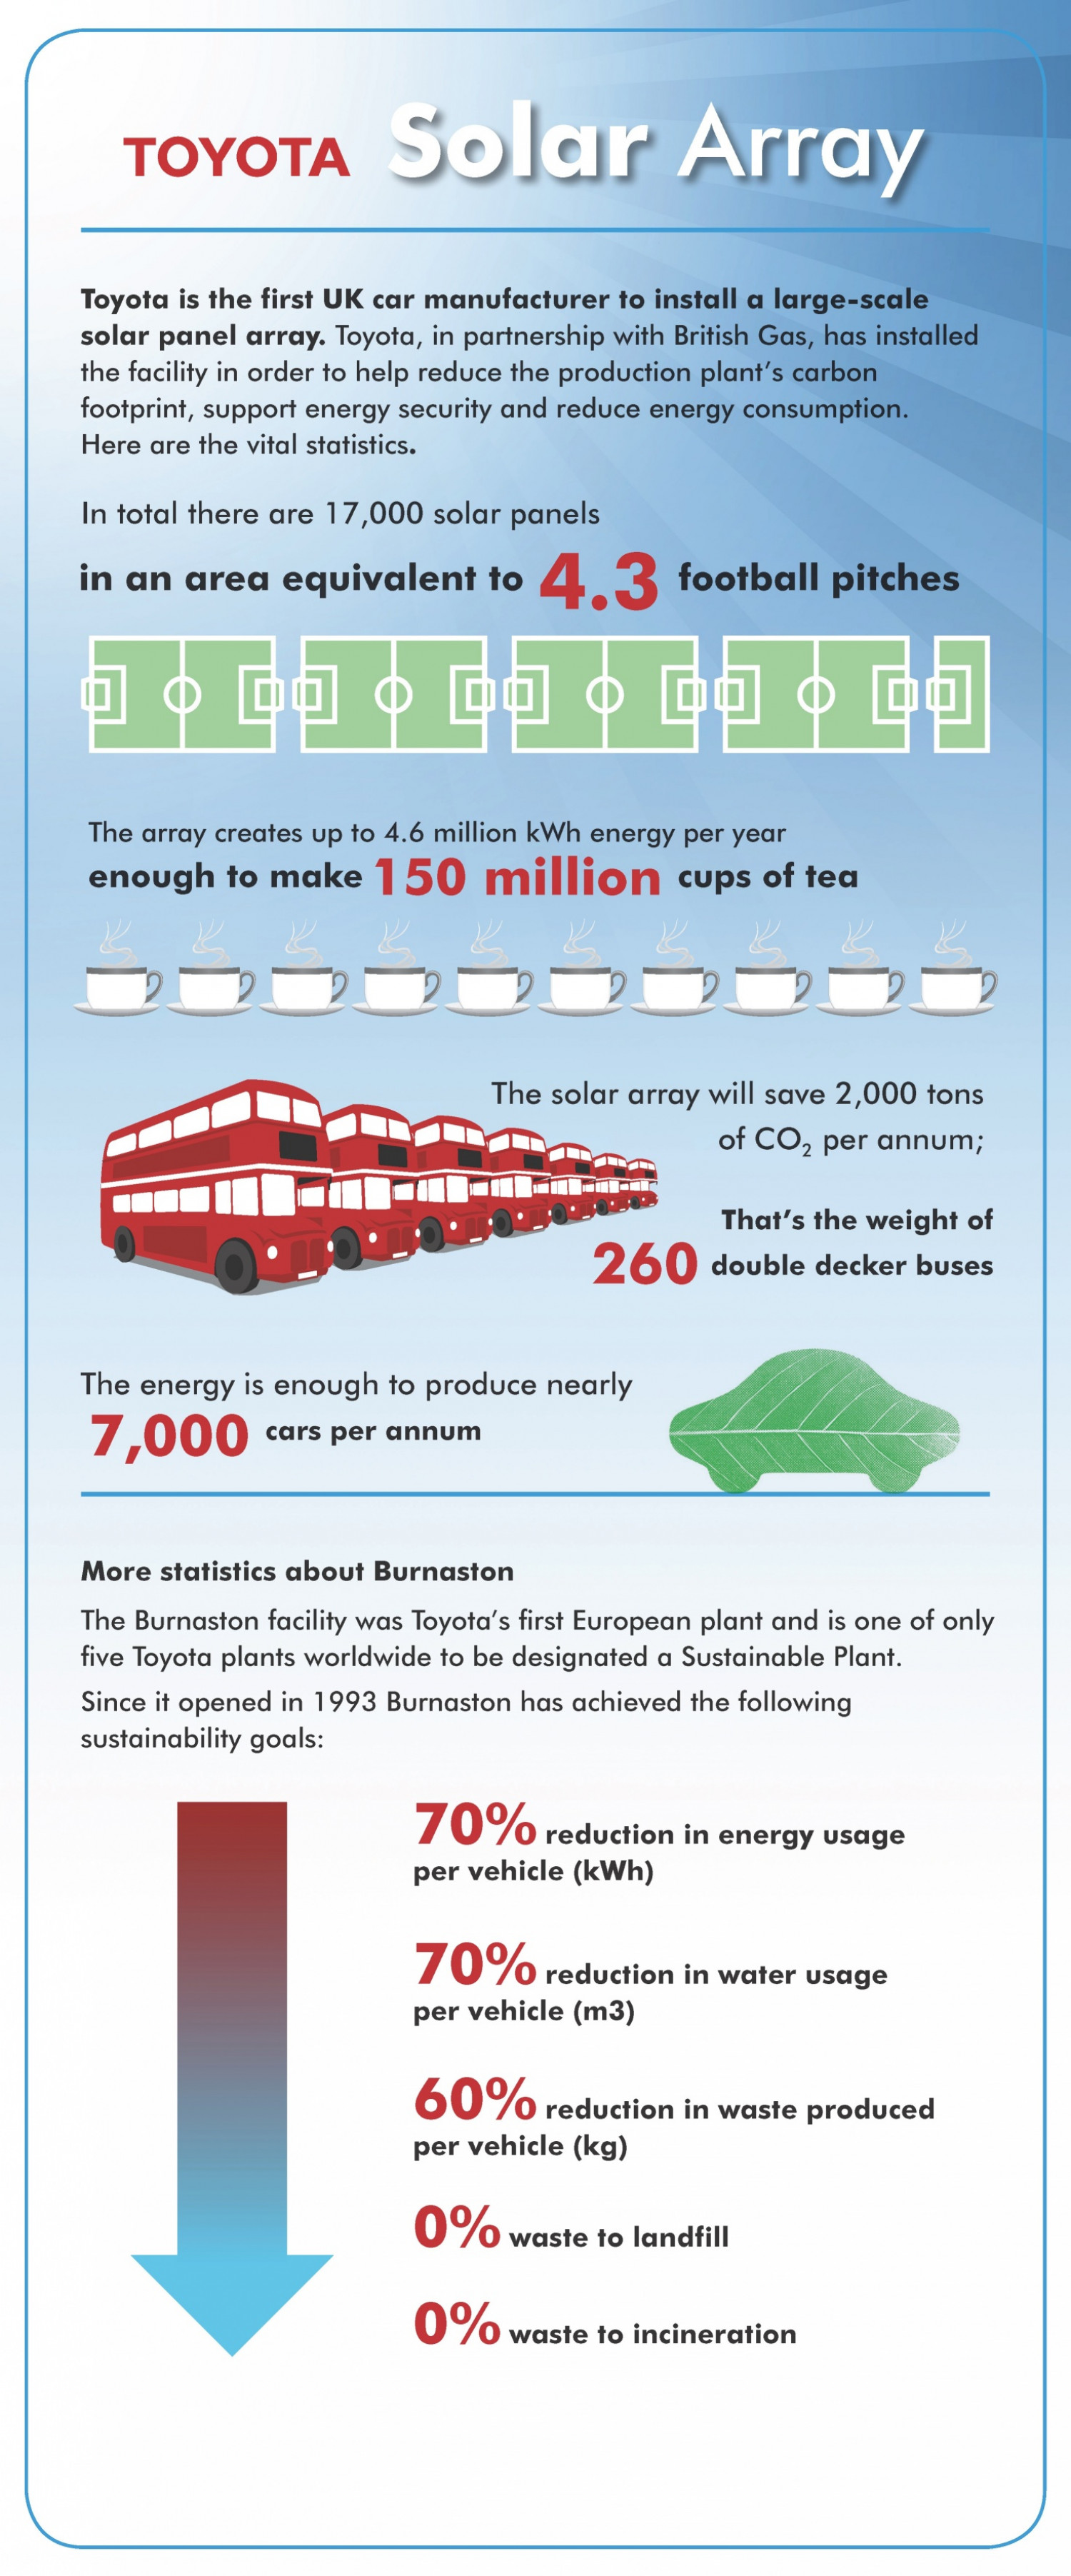 Toyota Solar Array Infographic